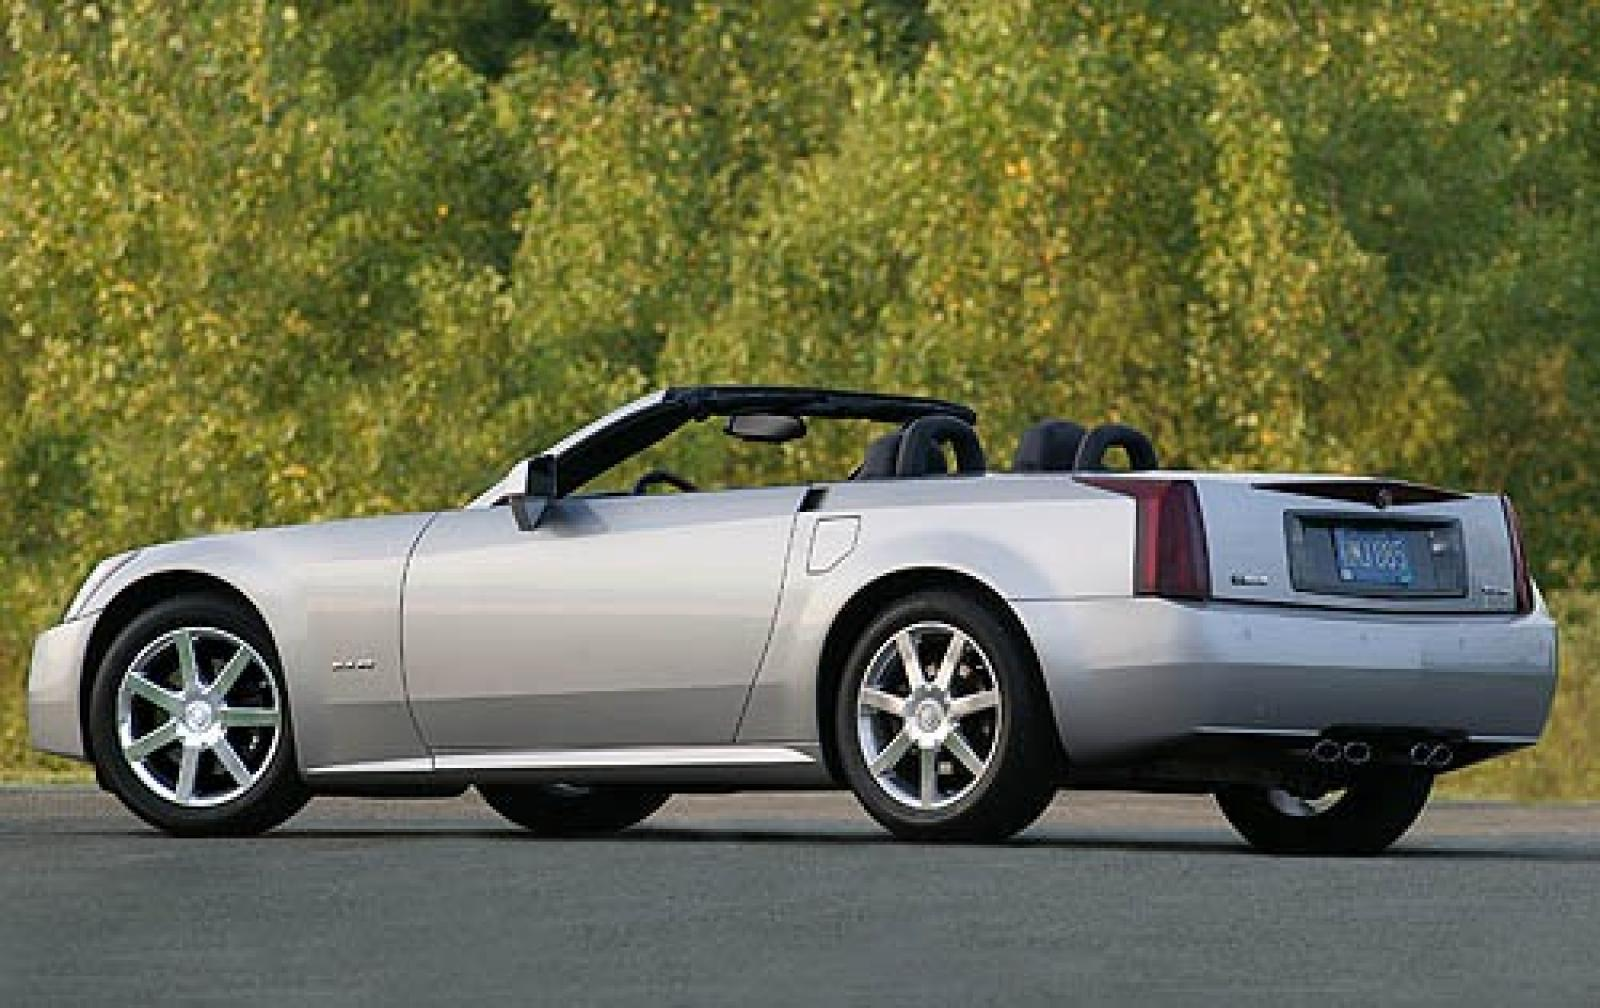 2007 cadillac xlr information and photos zombiedrive. Black Bedroom Furniture Sets. Home Design Ideas